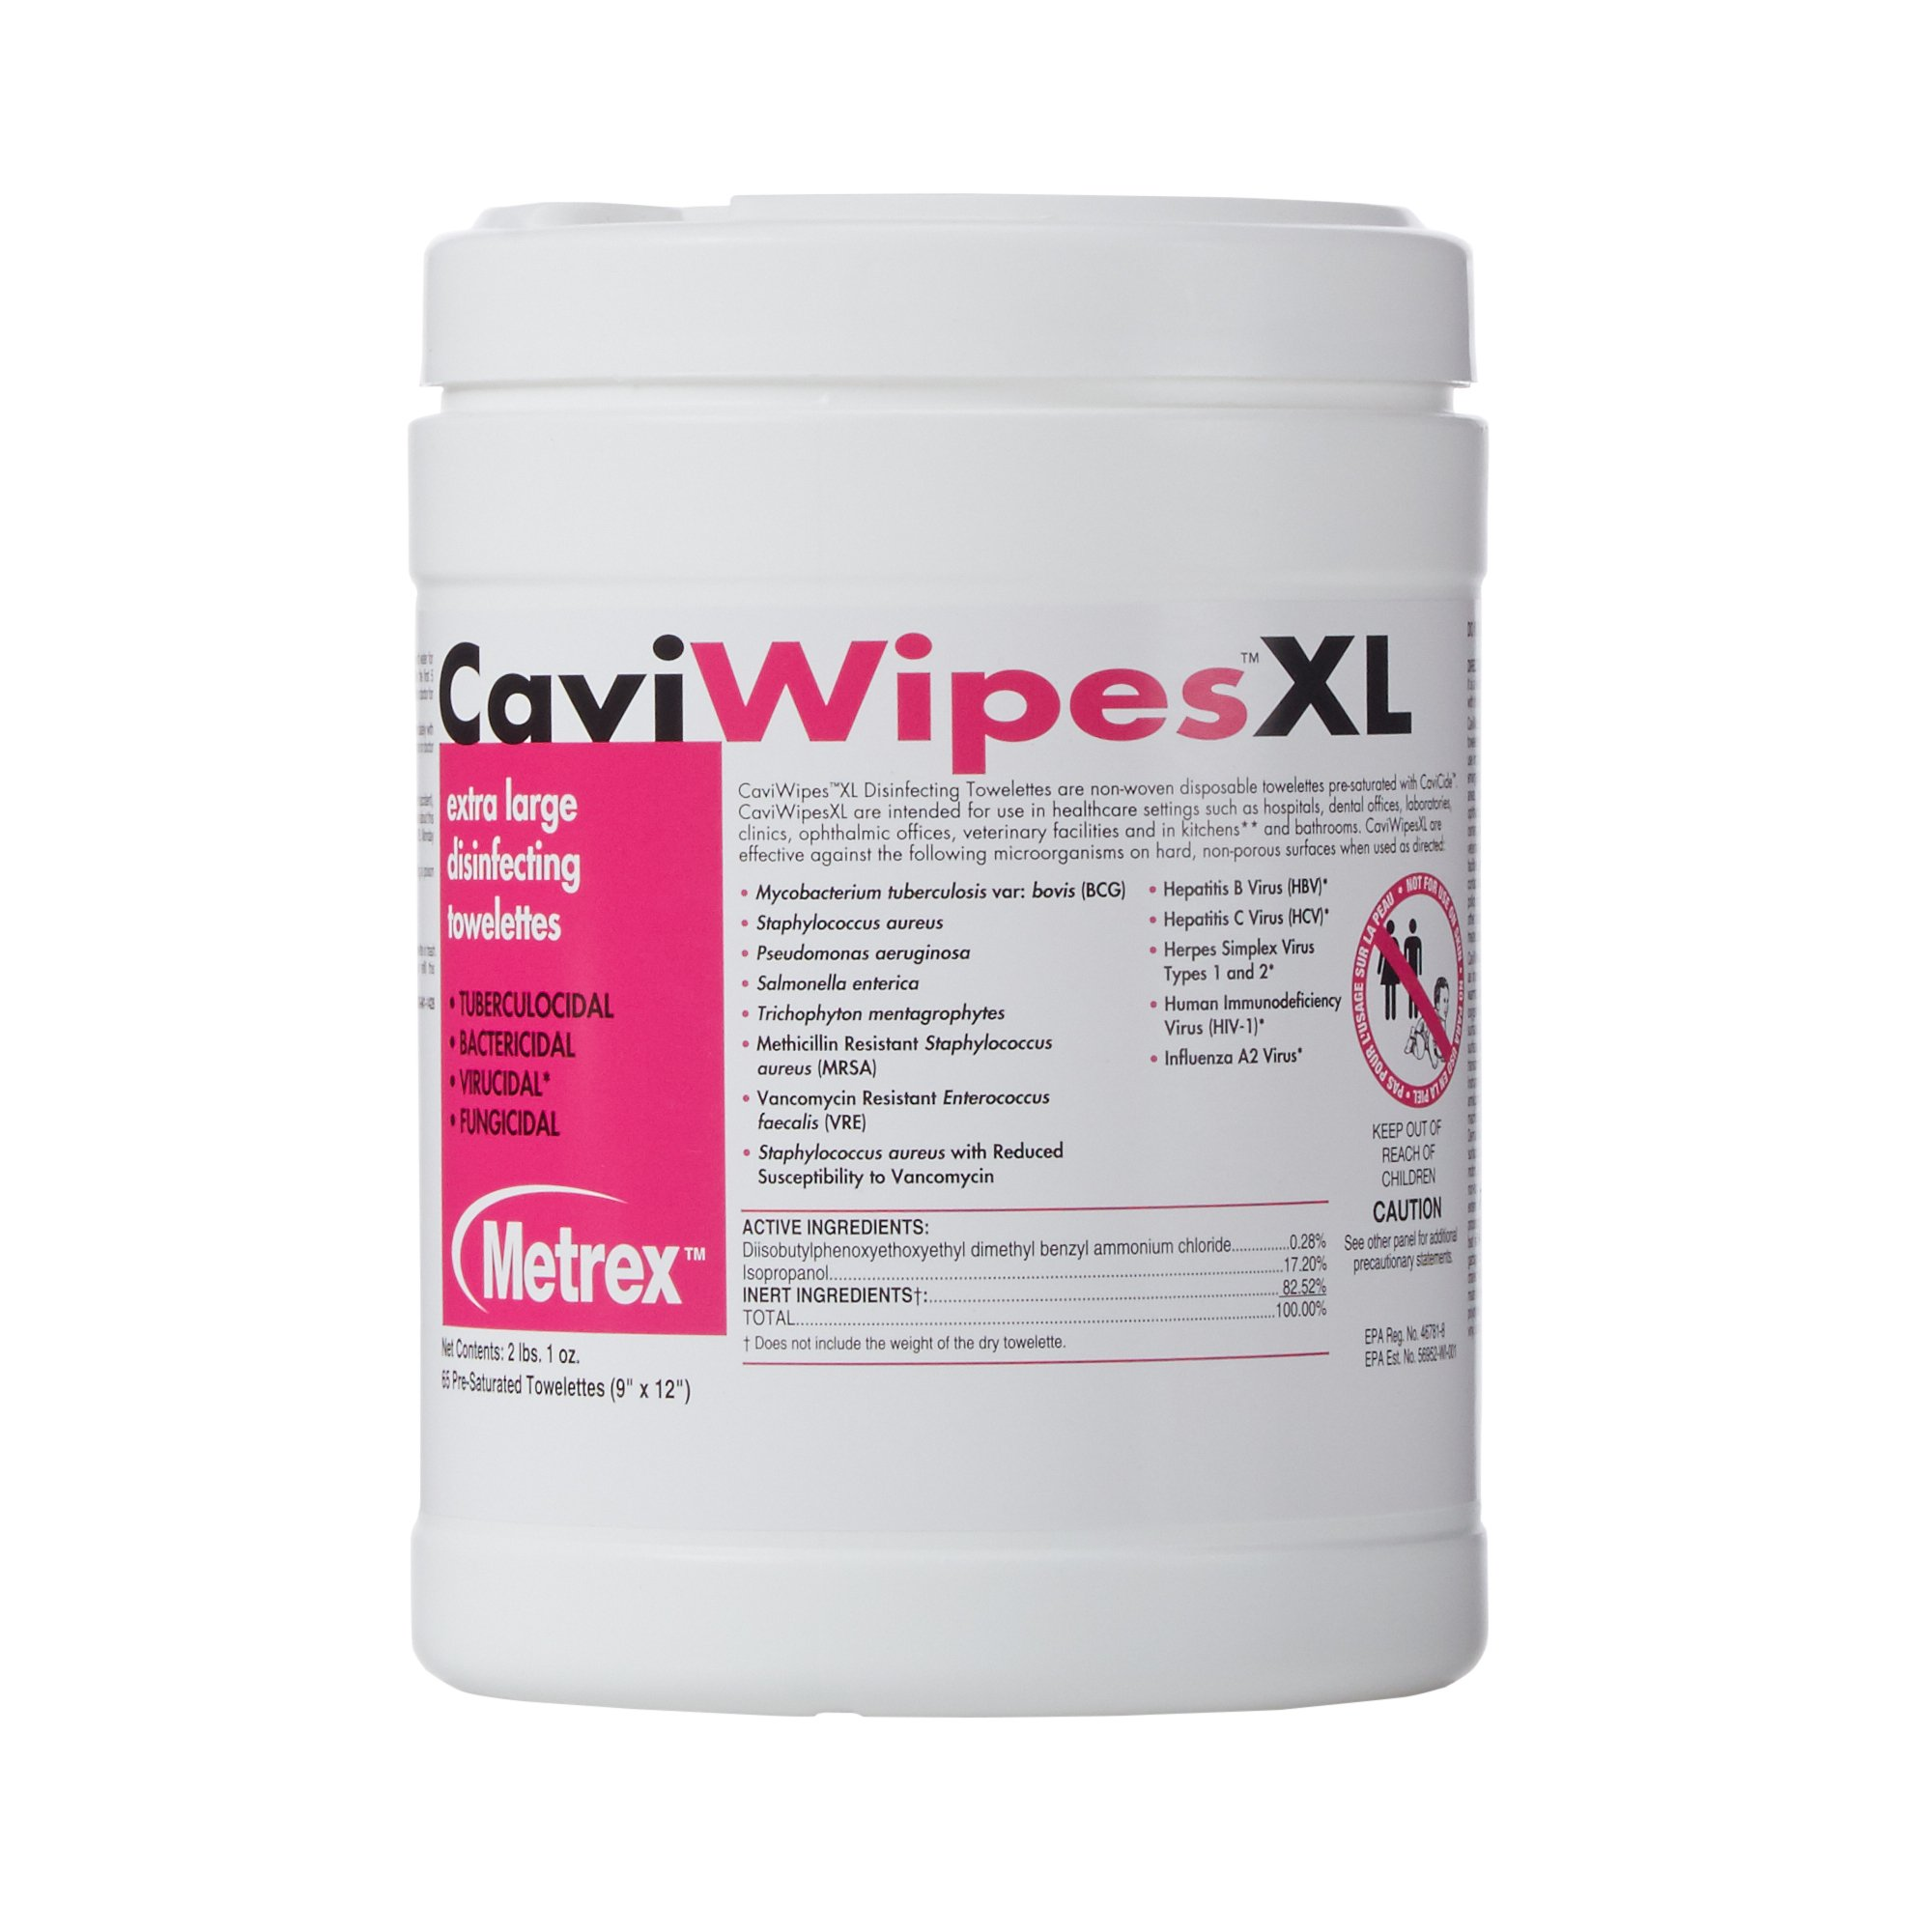 CaviWipes Surface Disinfectant Wipes XL, 13-1150-CN1, 1 Canister